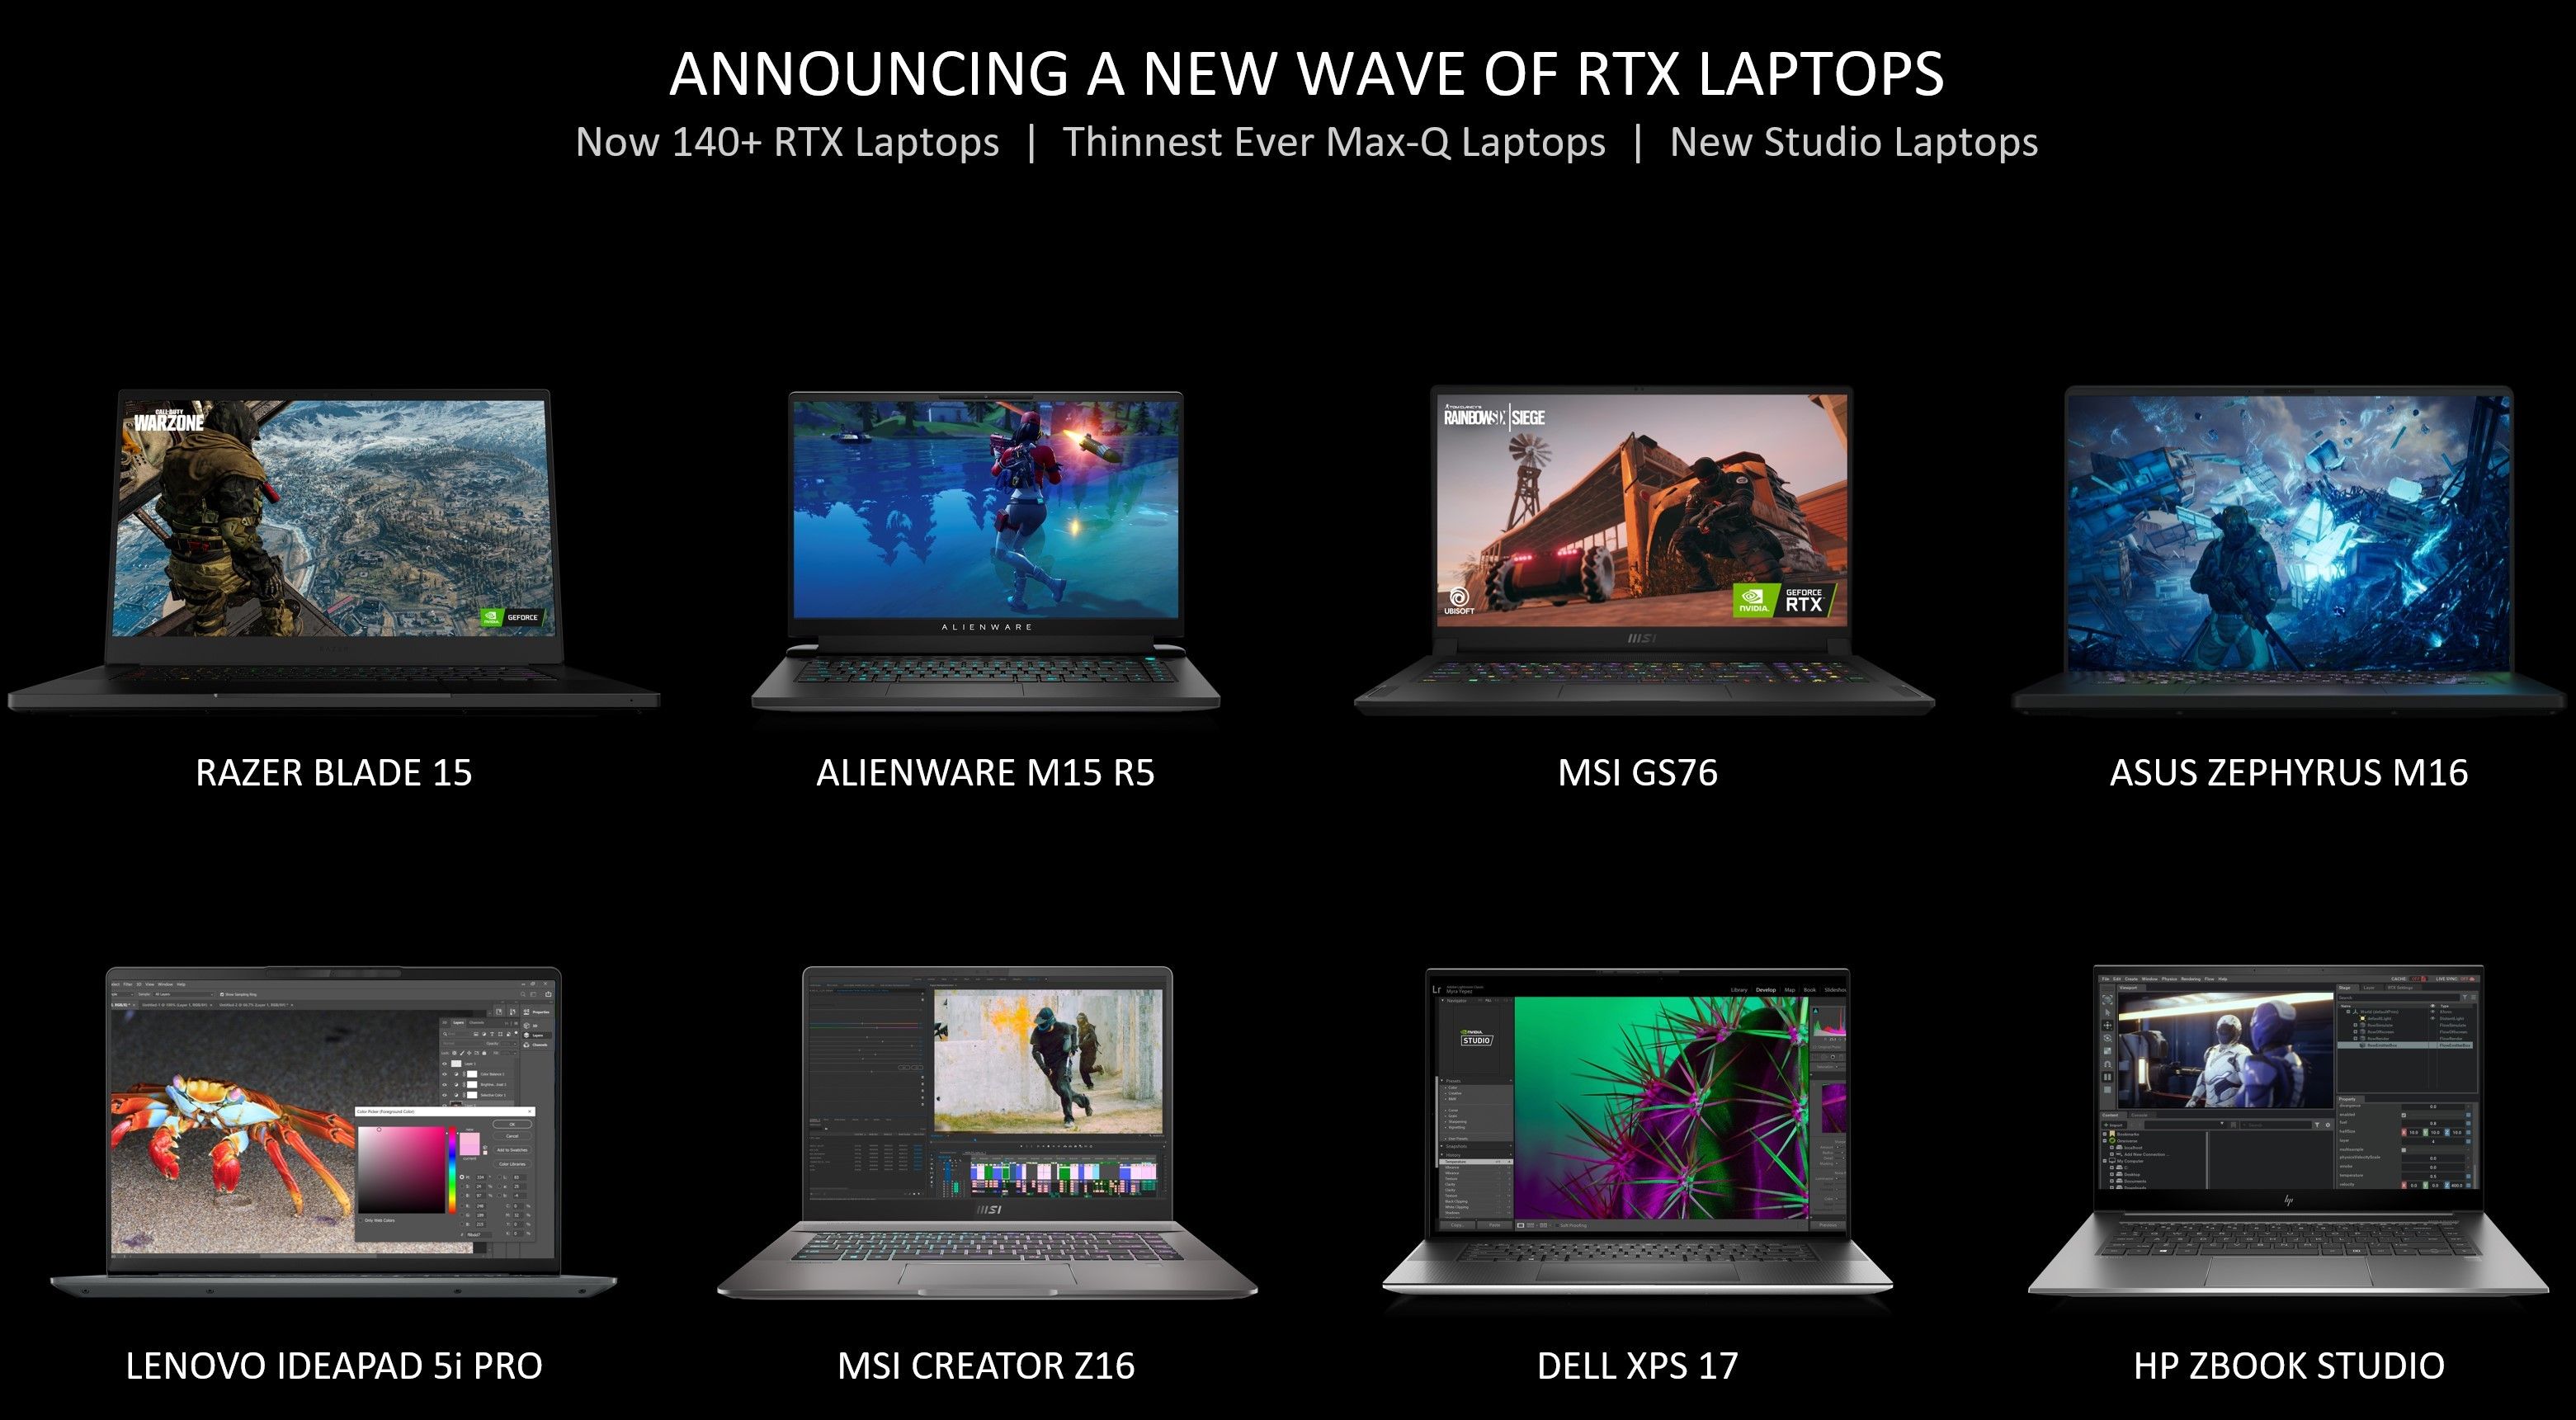 Image showcasing new RTX-based laptops from multiple manufacturers